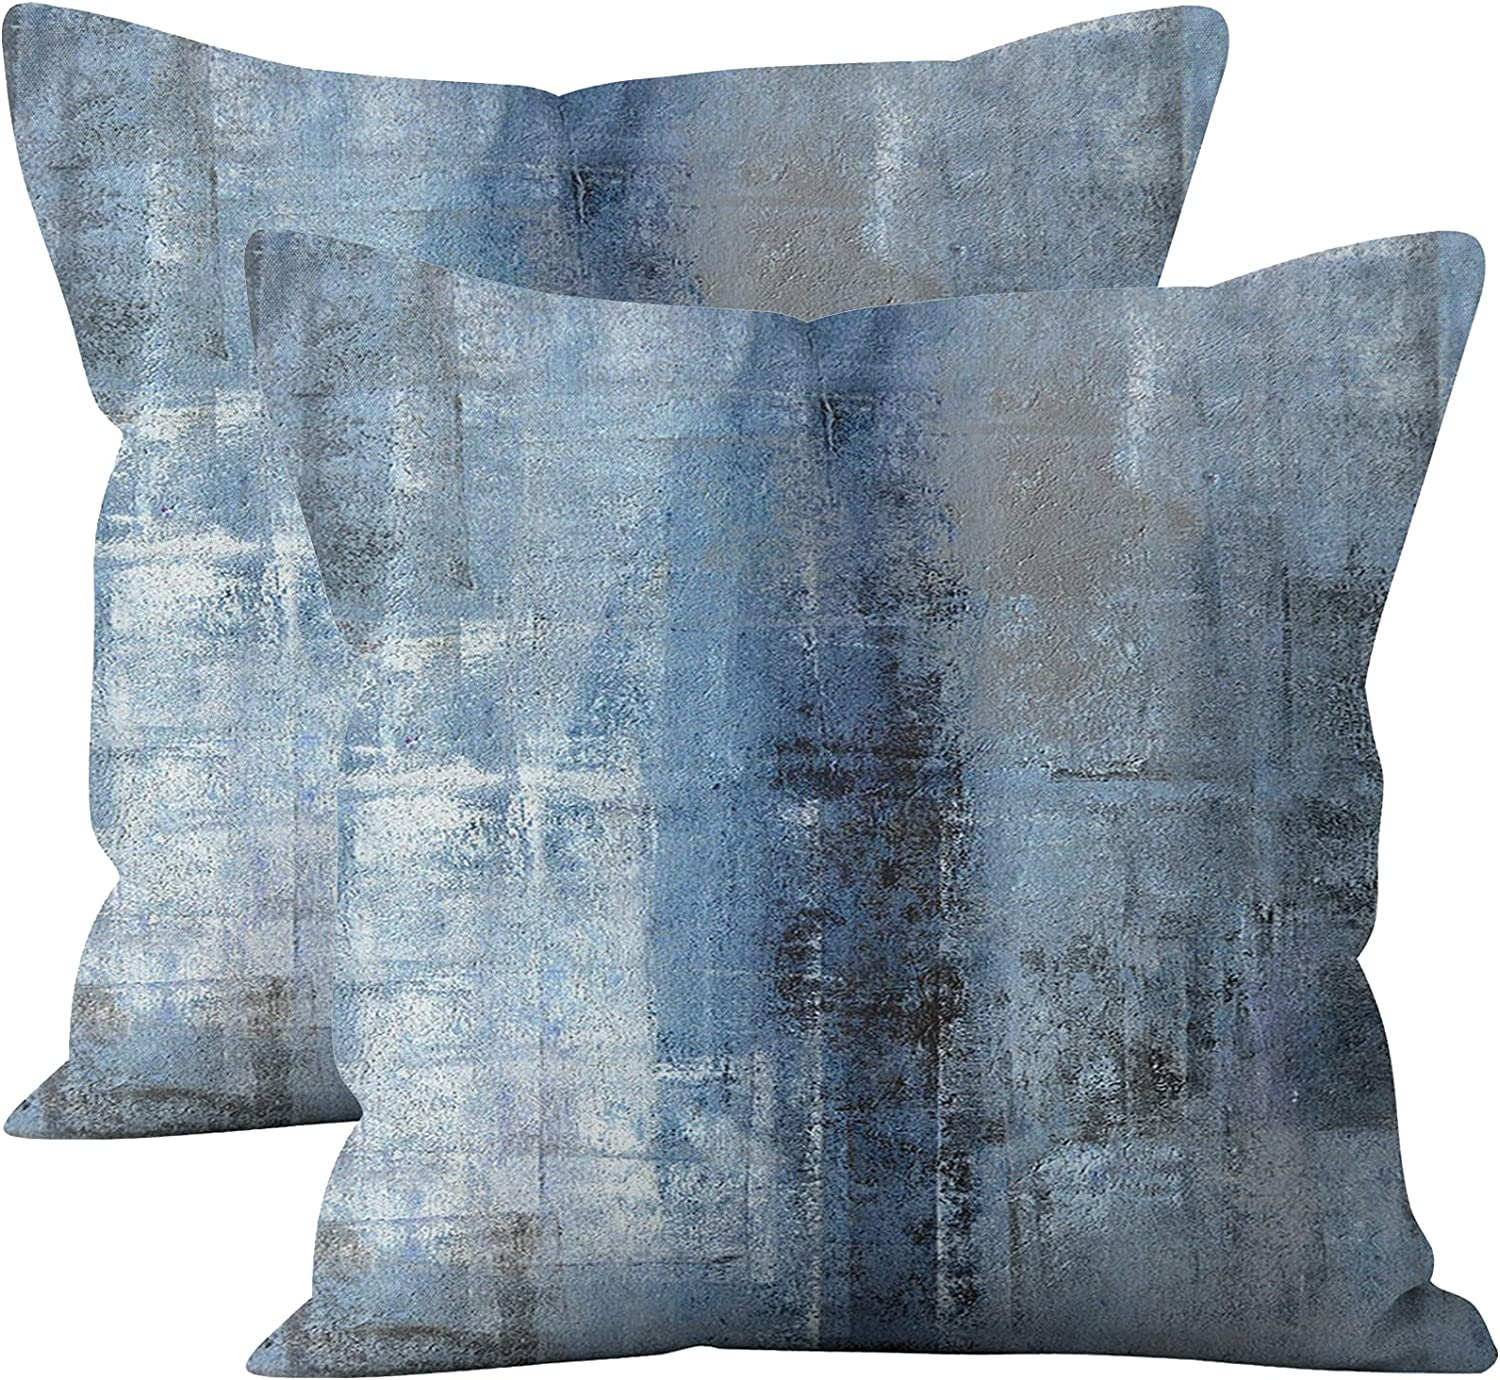 Taeamjone Blue and Grey Throw Pillow Covers, Modern Pillow Cover Home Decor Cushion Cover for Sofa Bed Living Room Bedroom, 18 x 18 inches